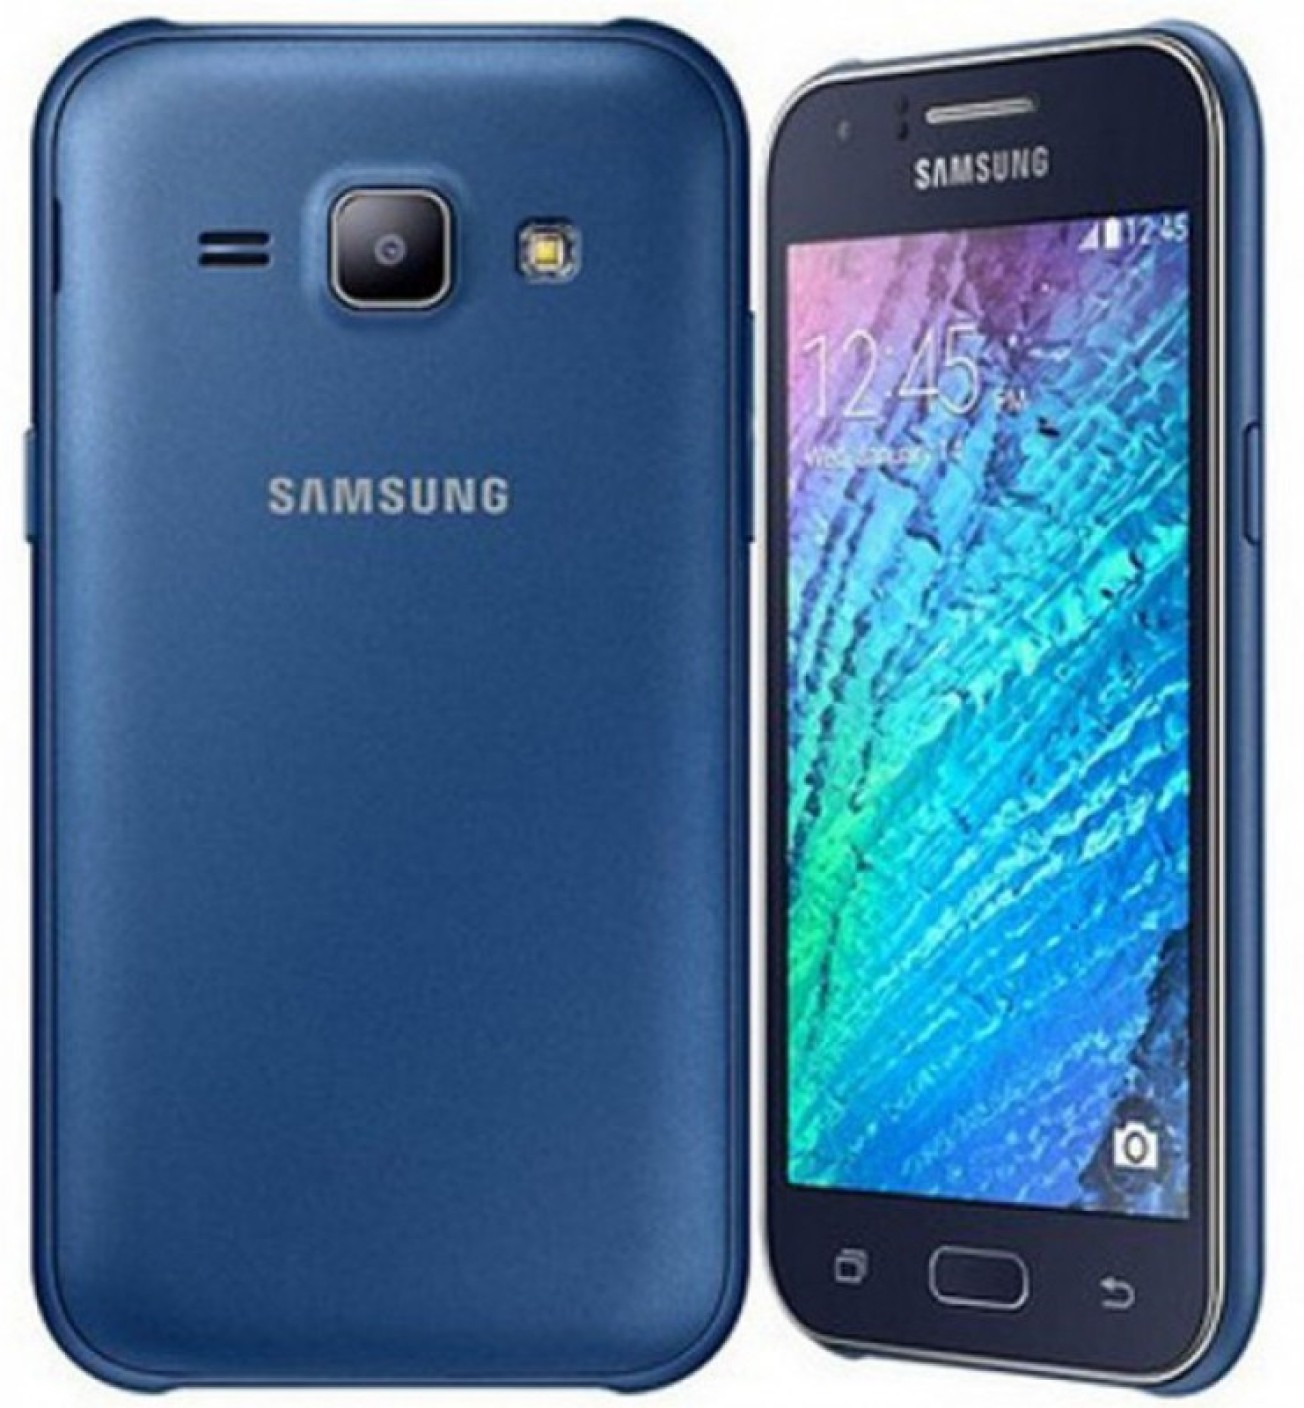 Samsung Galaxy J1 Ace  Blue  4 Gb  Online At Best Price With Great Offers Only On Flipkart Com